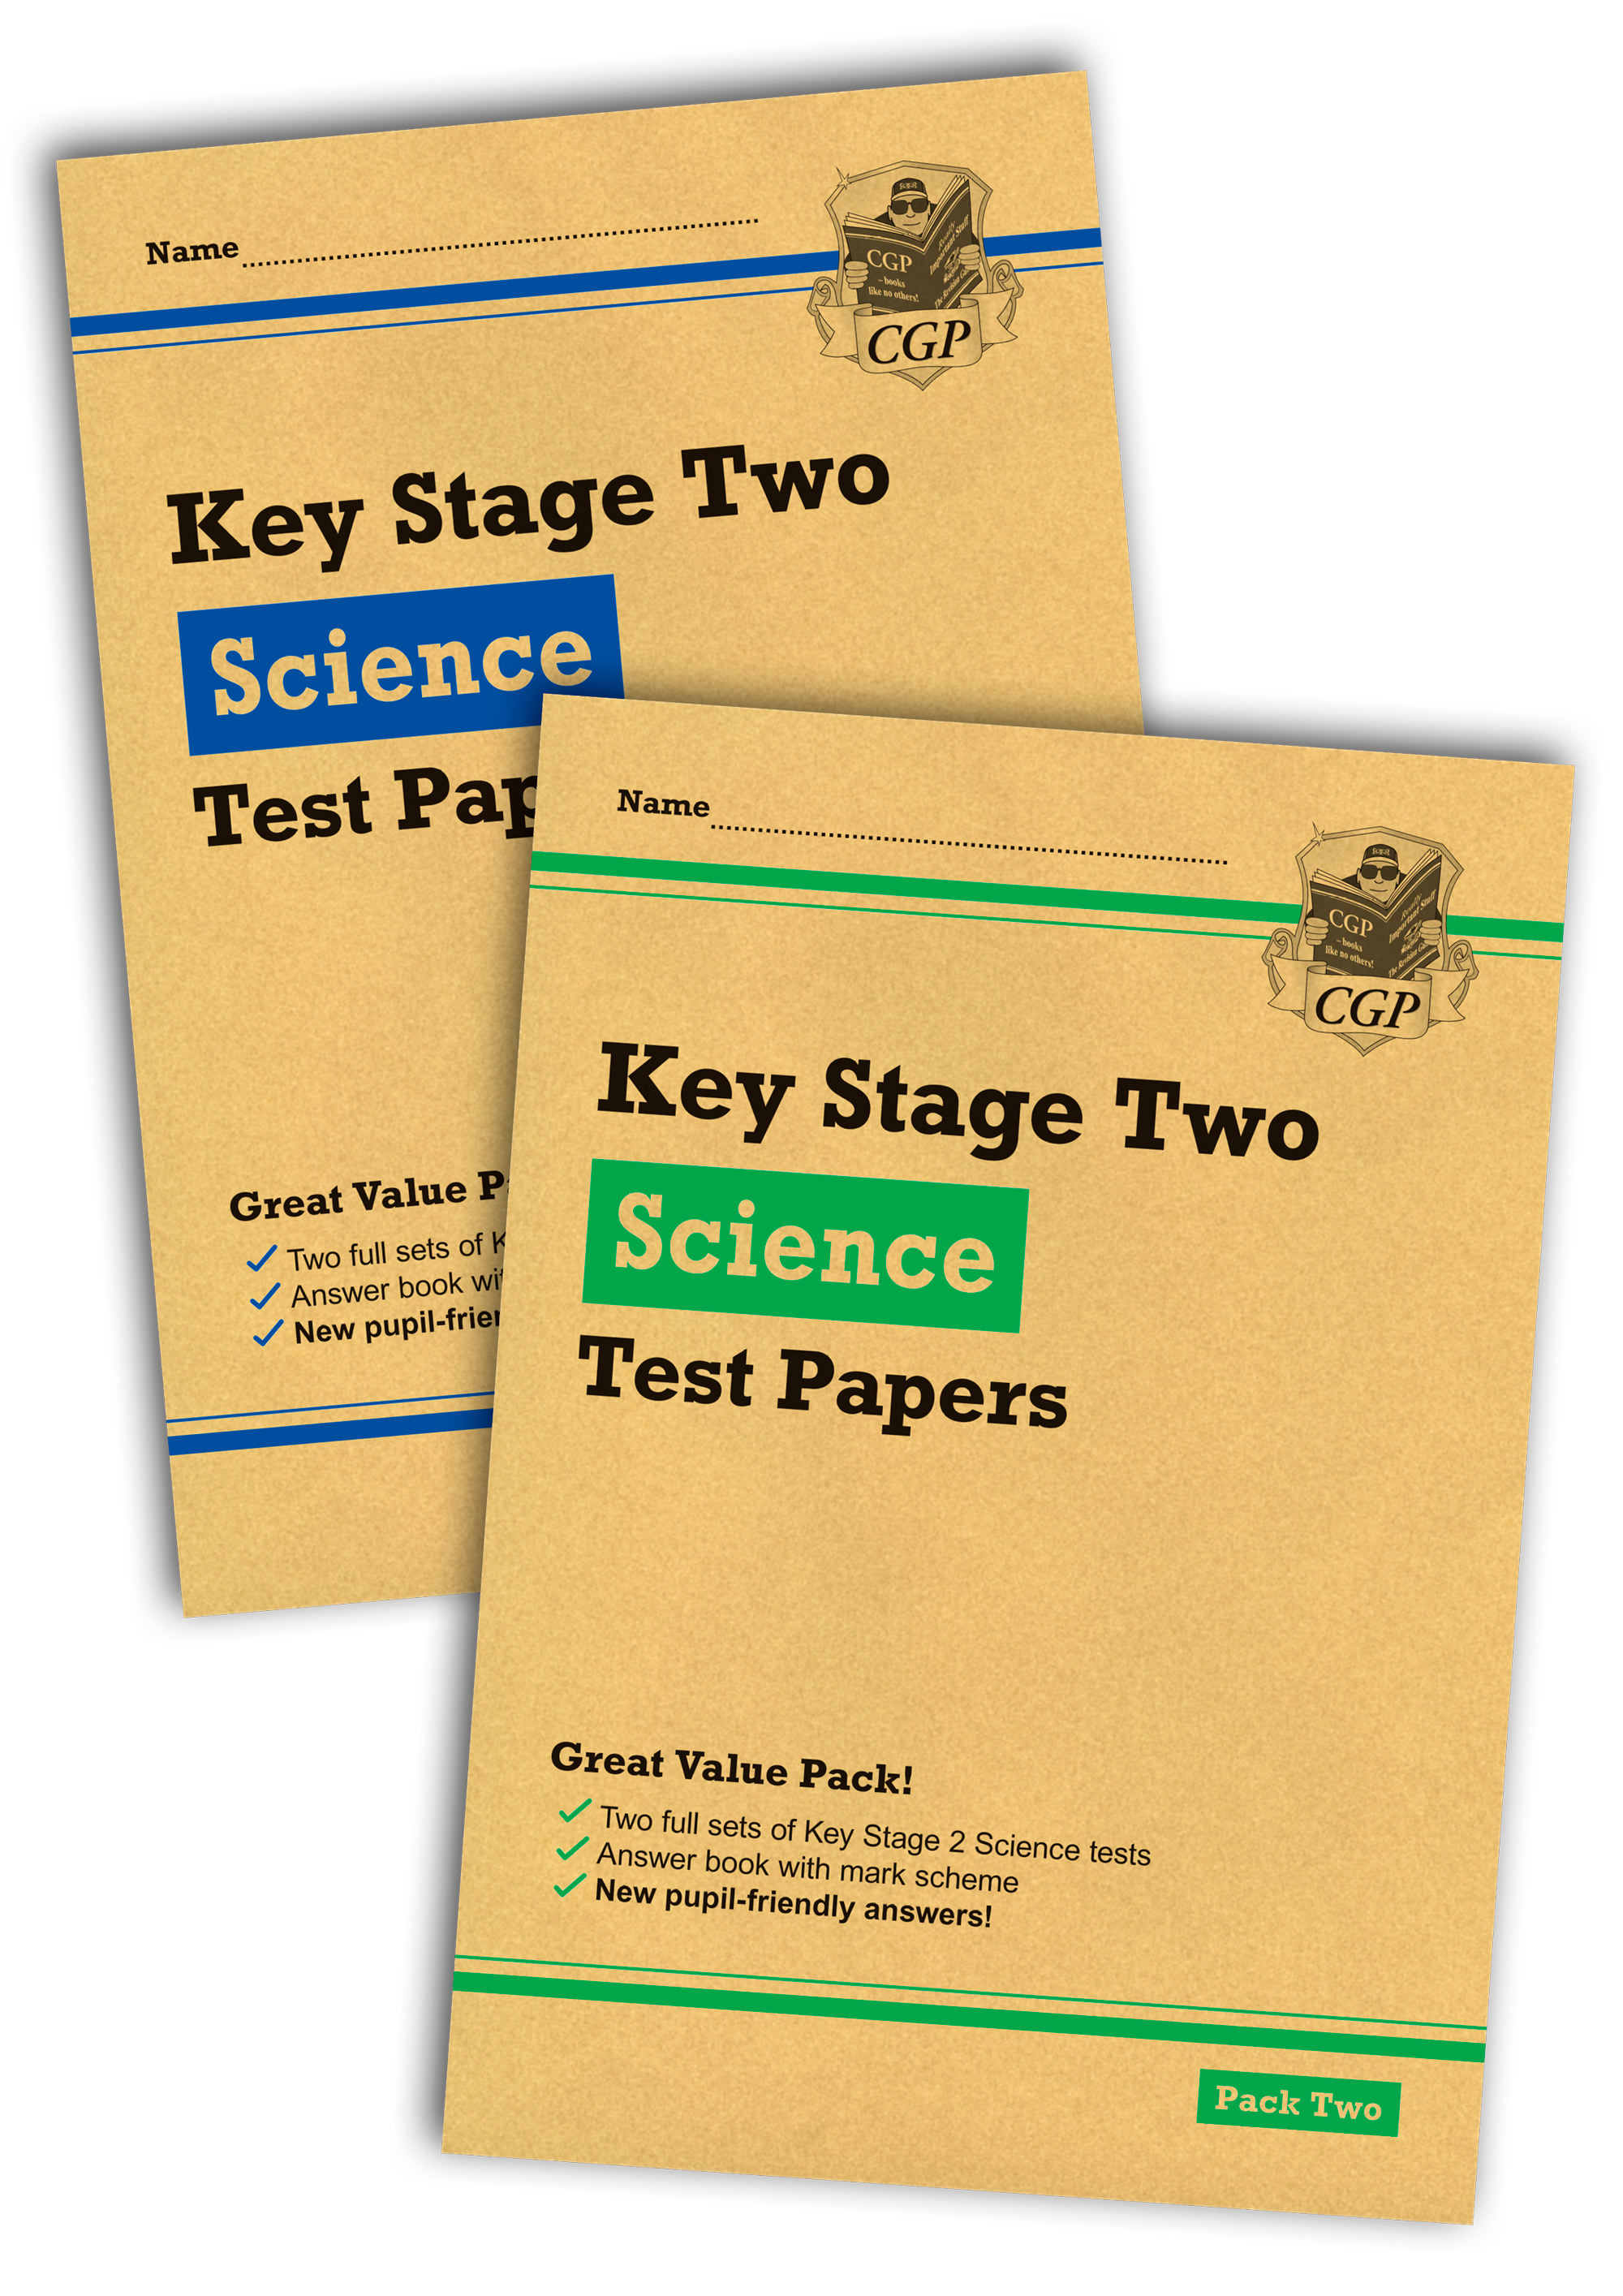 SHB2P23 - New KS2 Science Test Bundle: Pack 1 & 2 (for the 2019 tests)